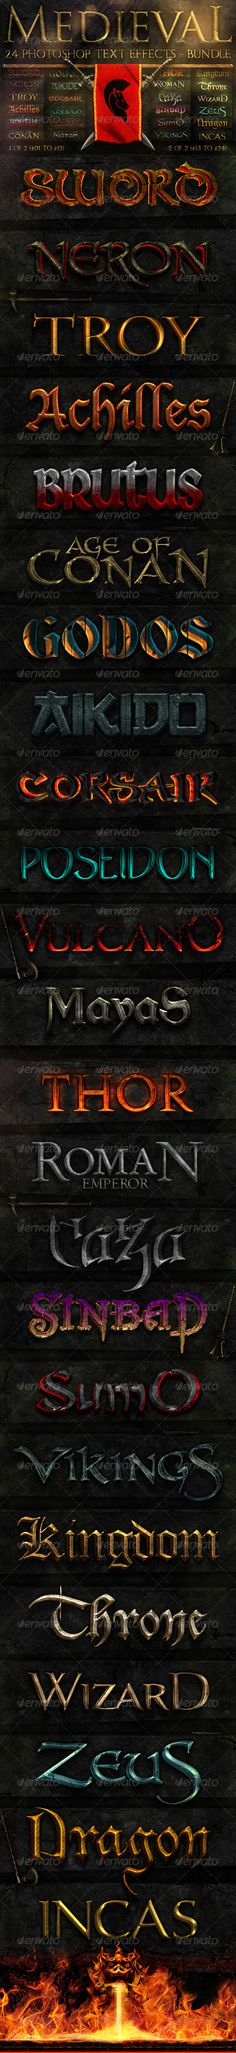 Medieval Photoshop Text Effects [BUNDLE]